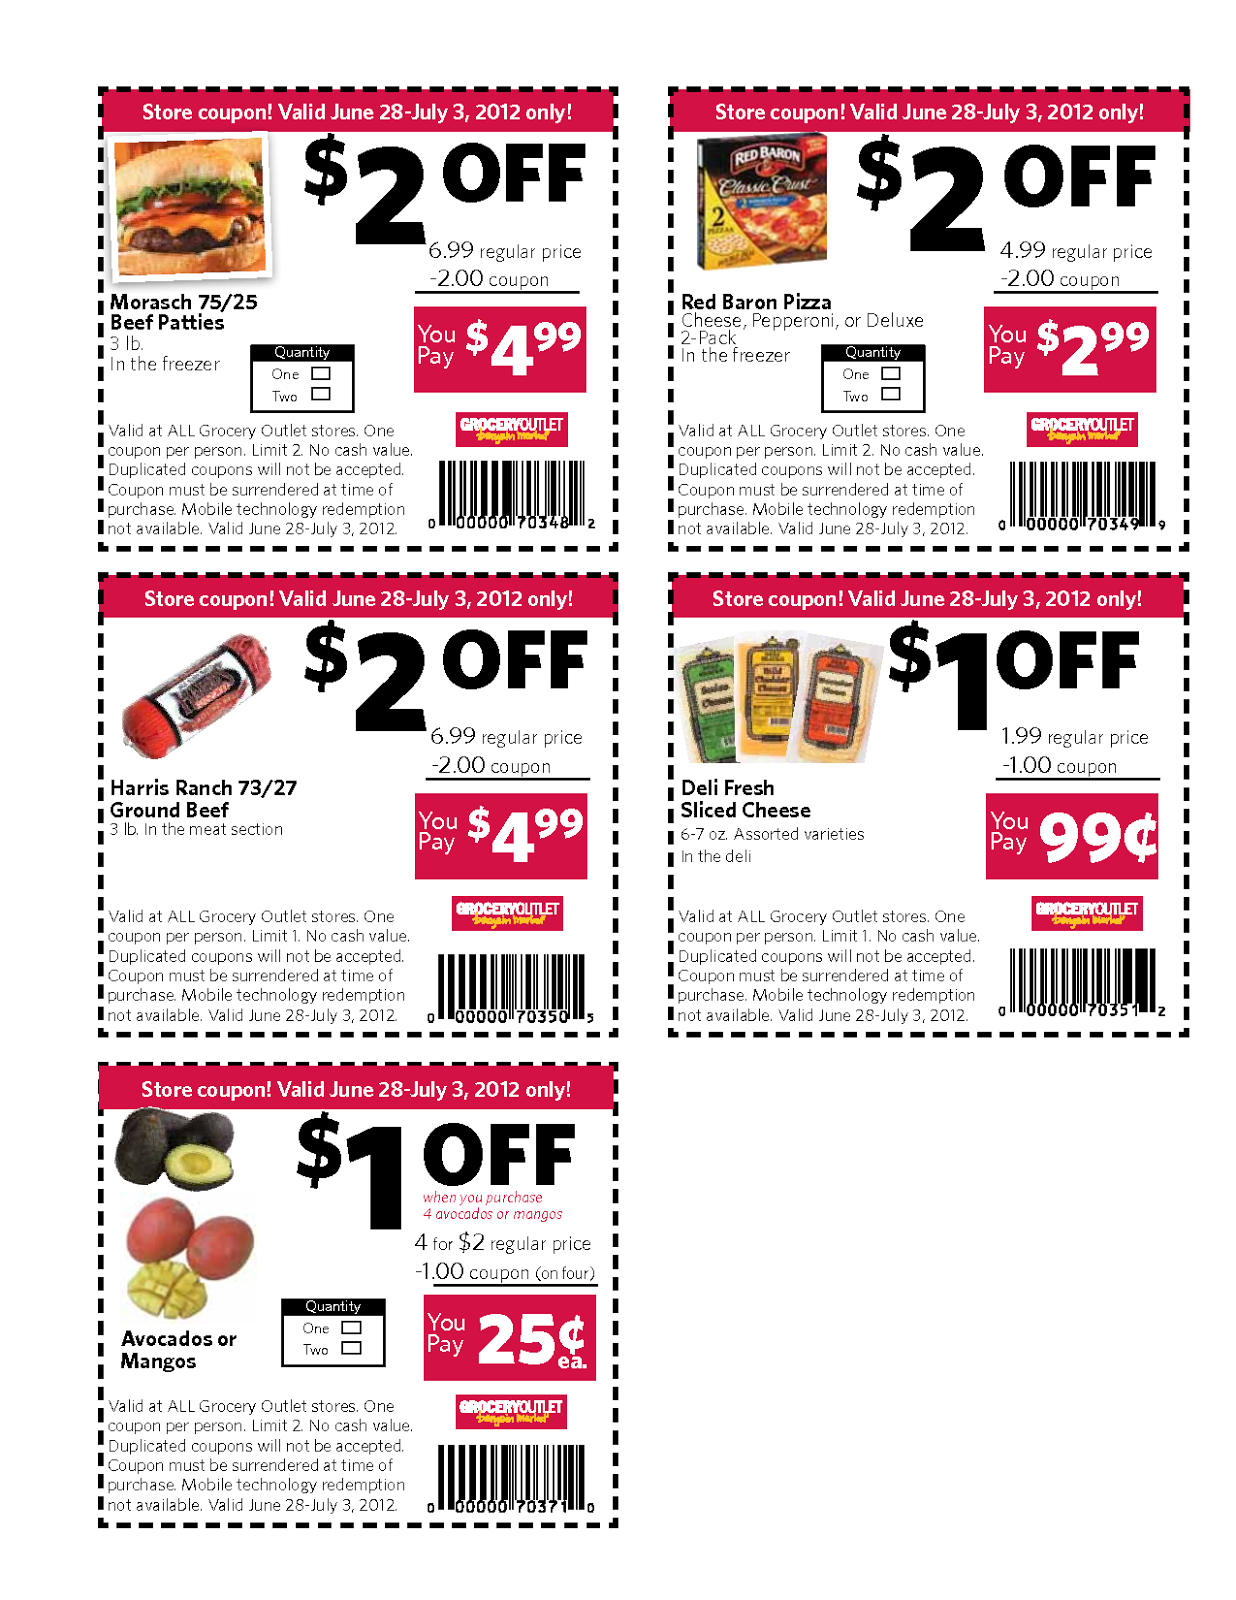 Free Coupons Printable Grocery : Pizza Hut Factoria - How To Get Free Printable Grocery Coupons